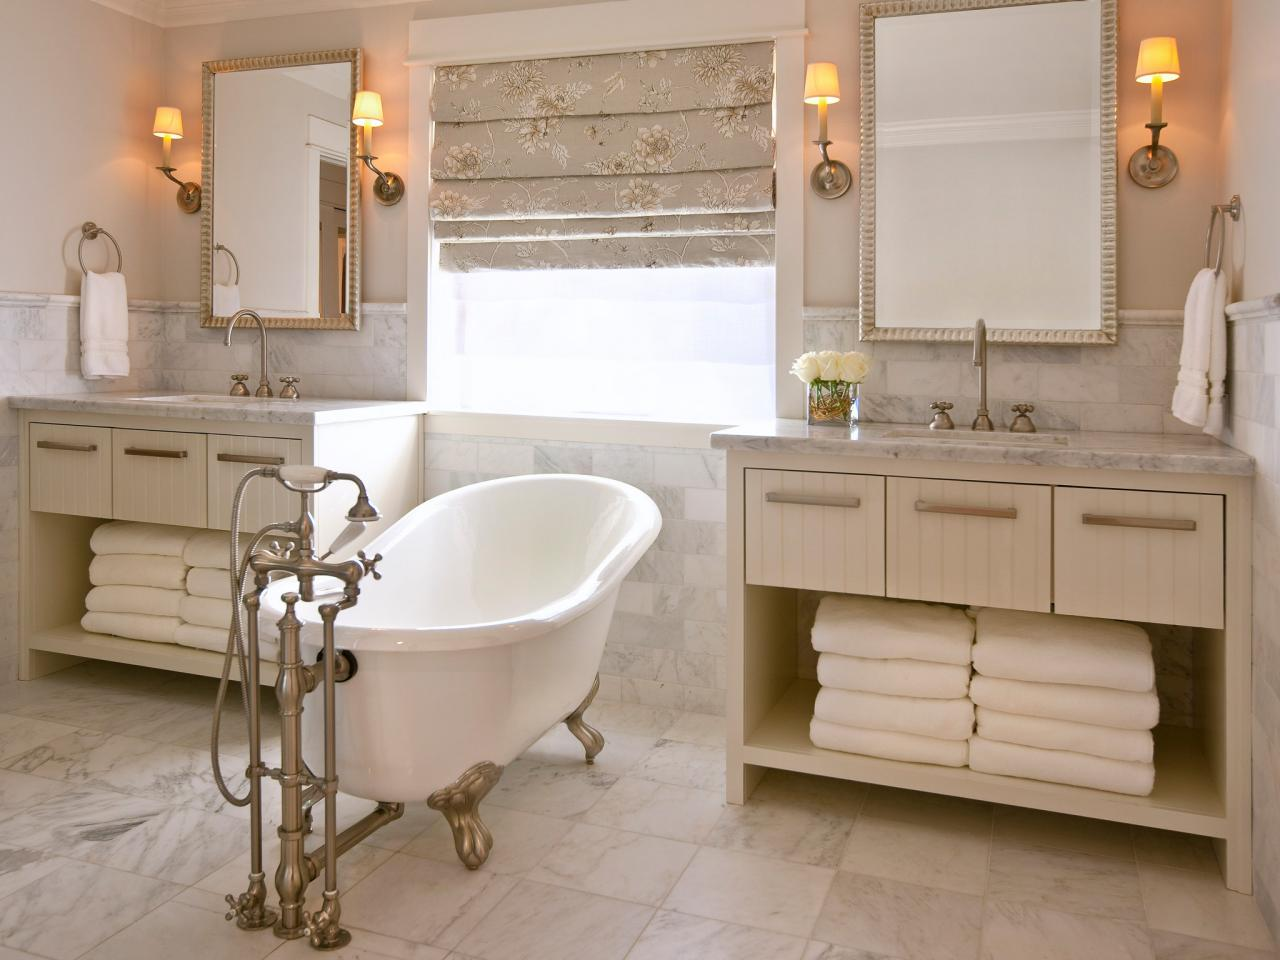 Classy Room Layout Planner With Bathtub Between Vanities near Window